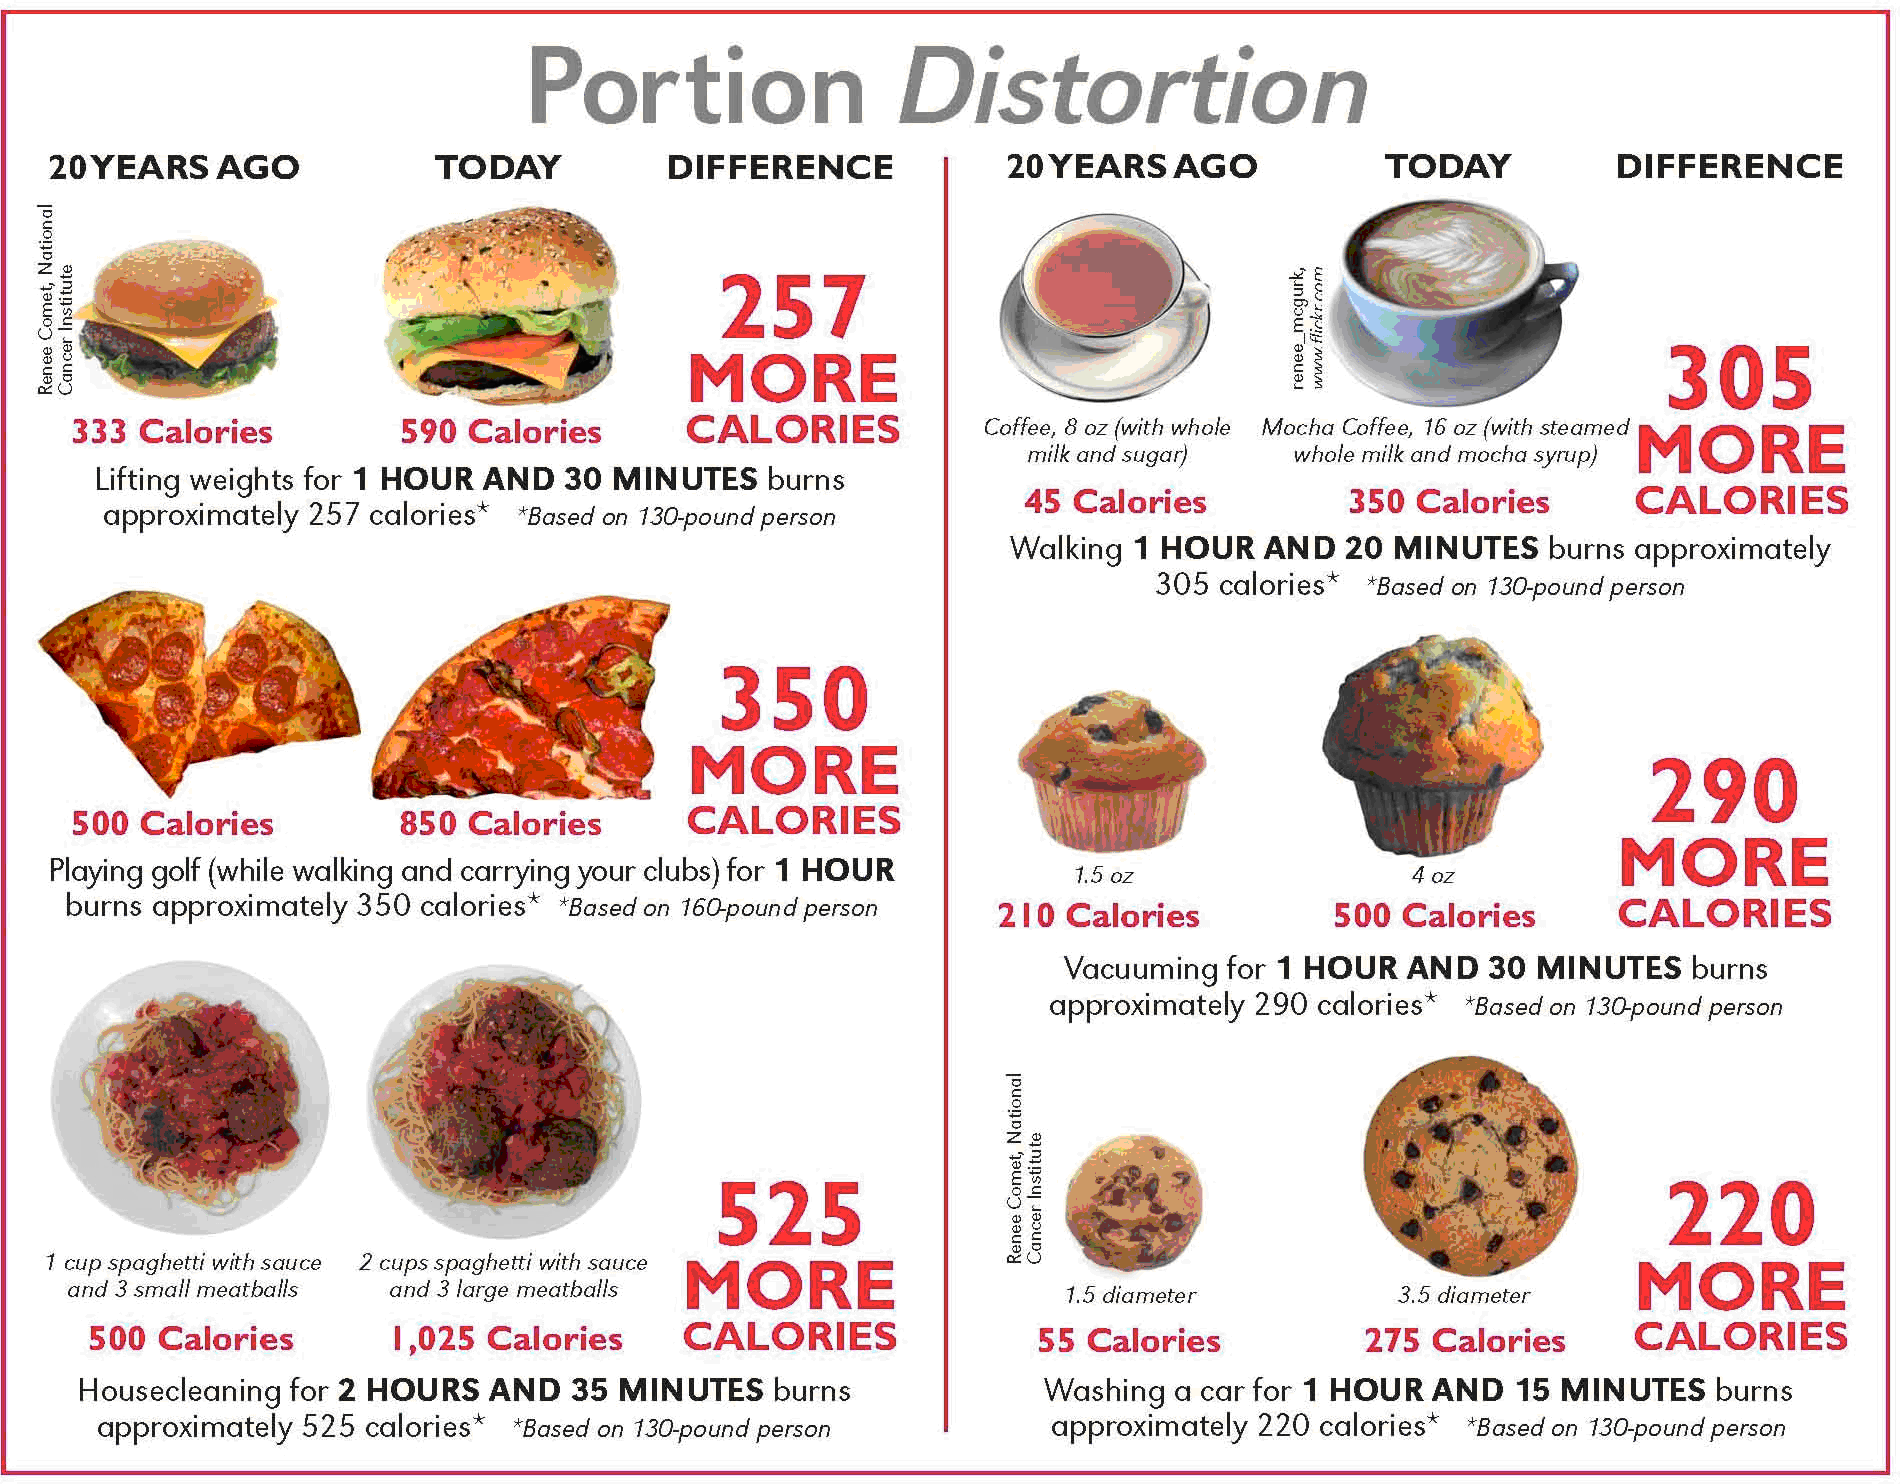 Food Portions The 1 Factor That Makes You Fat